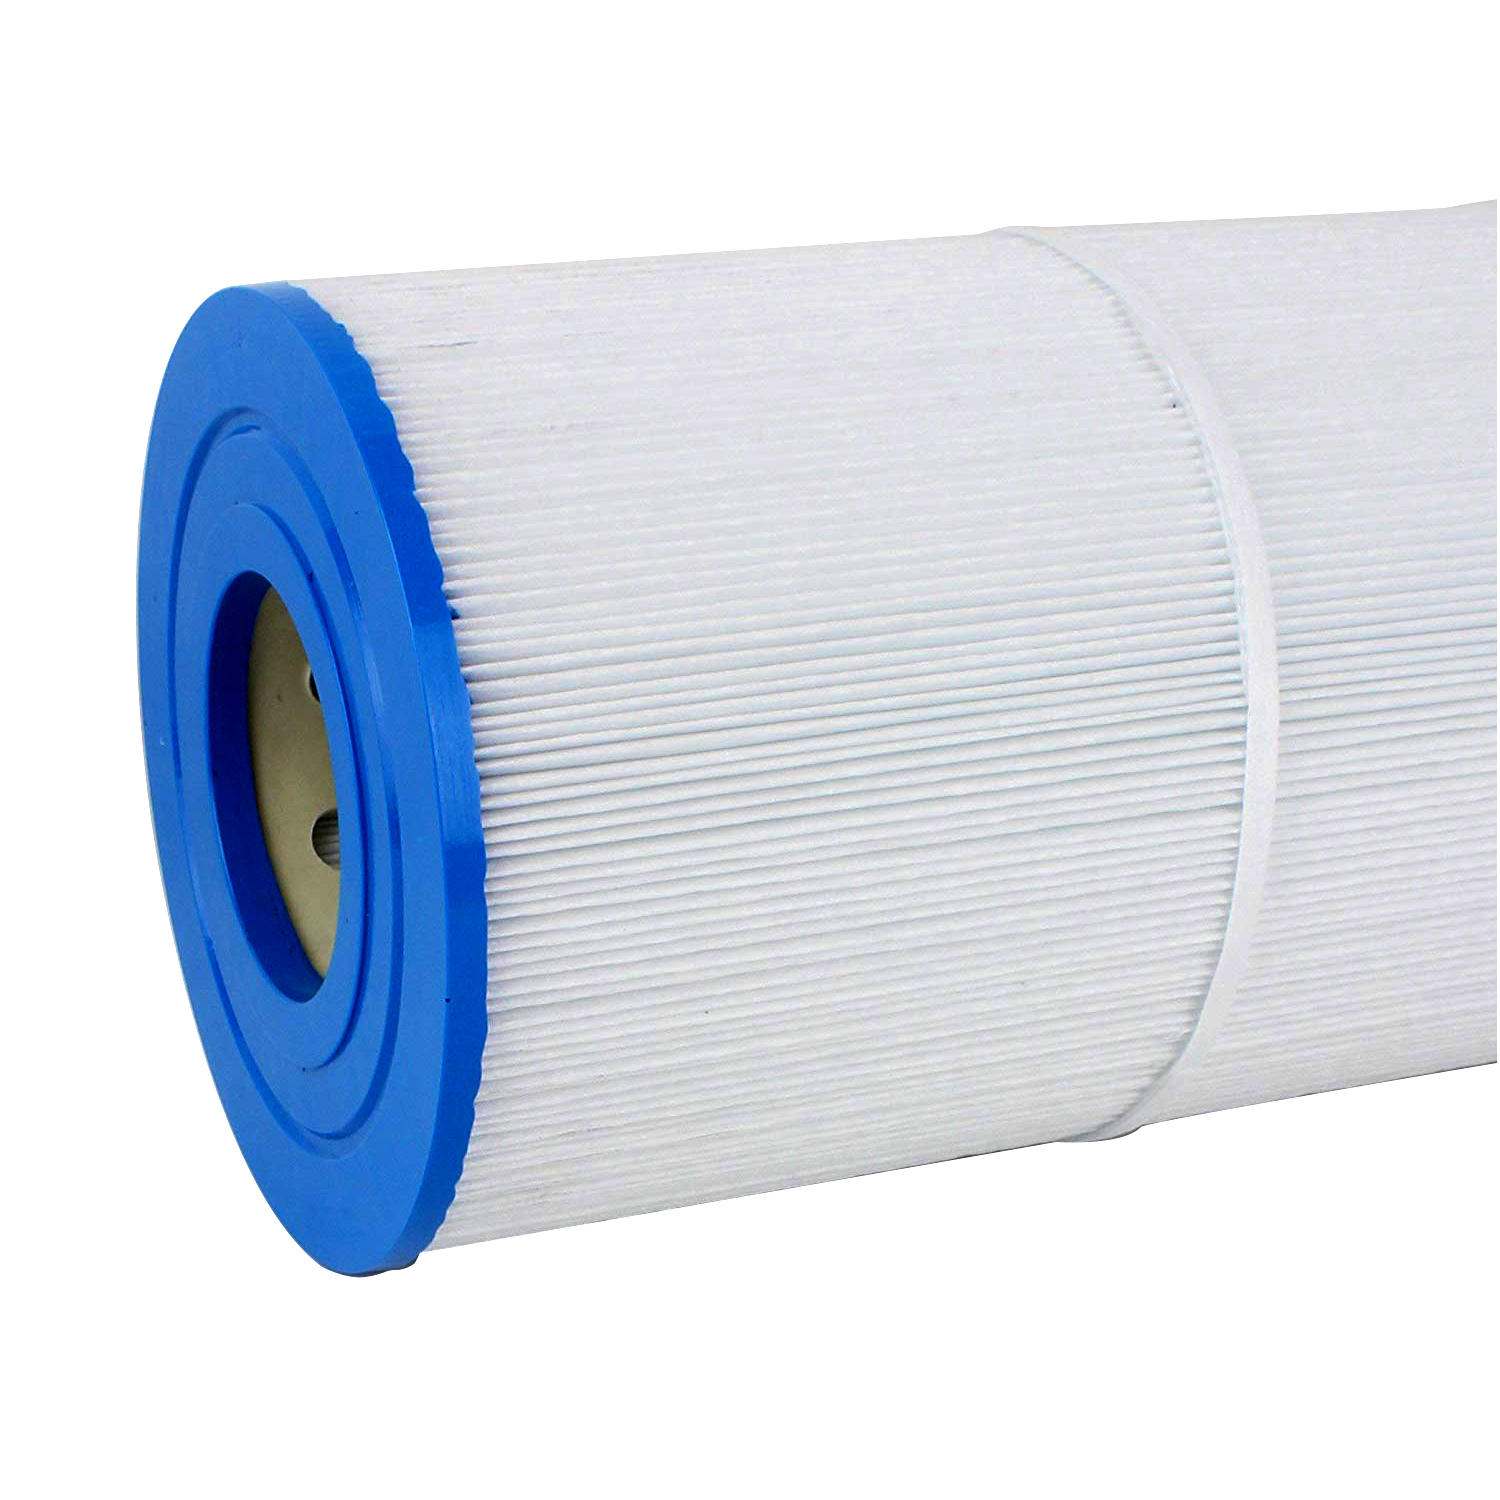 OEM manufacturer Pleated Filter Cartridge -